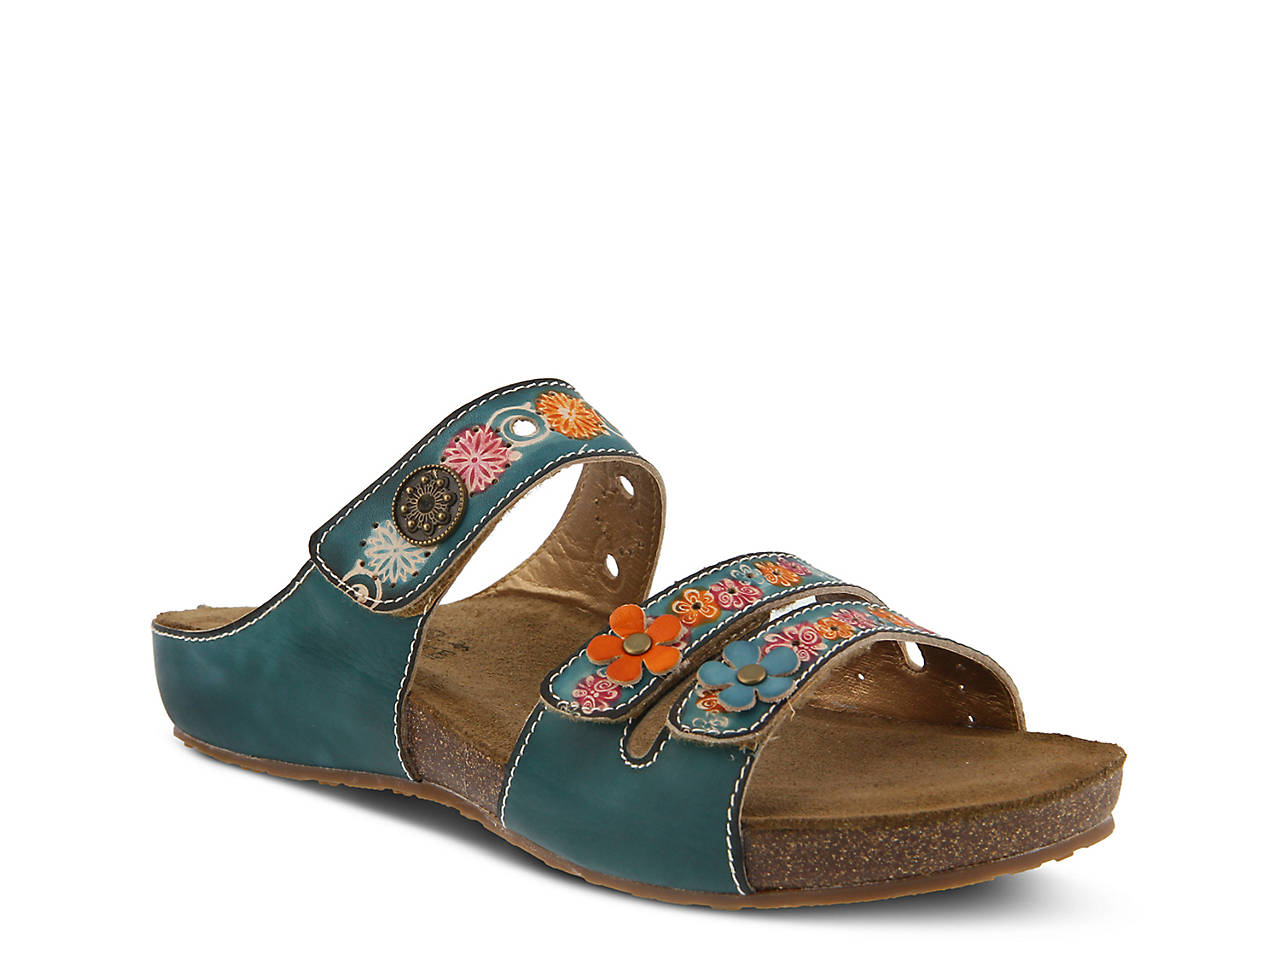 L'Artiste By Spring Step ... Freesia Women's Slide Sandals discount outlet pdpETEJz4